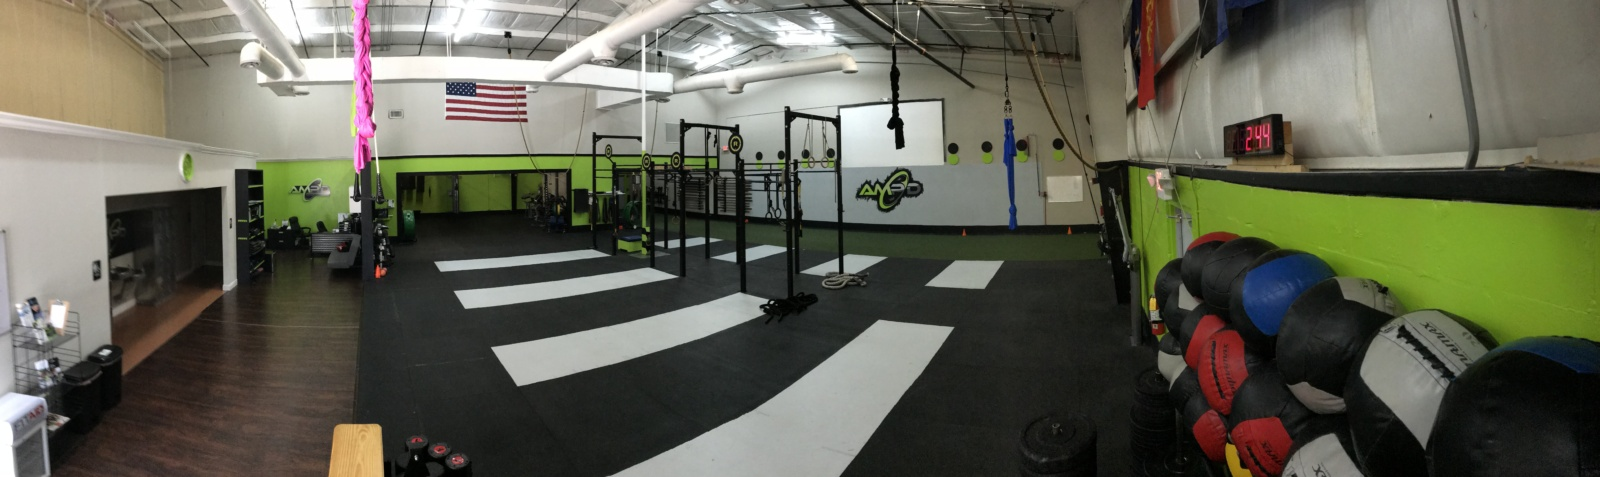 amped facility